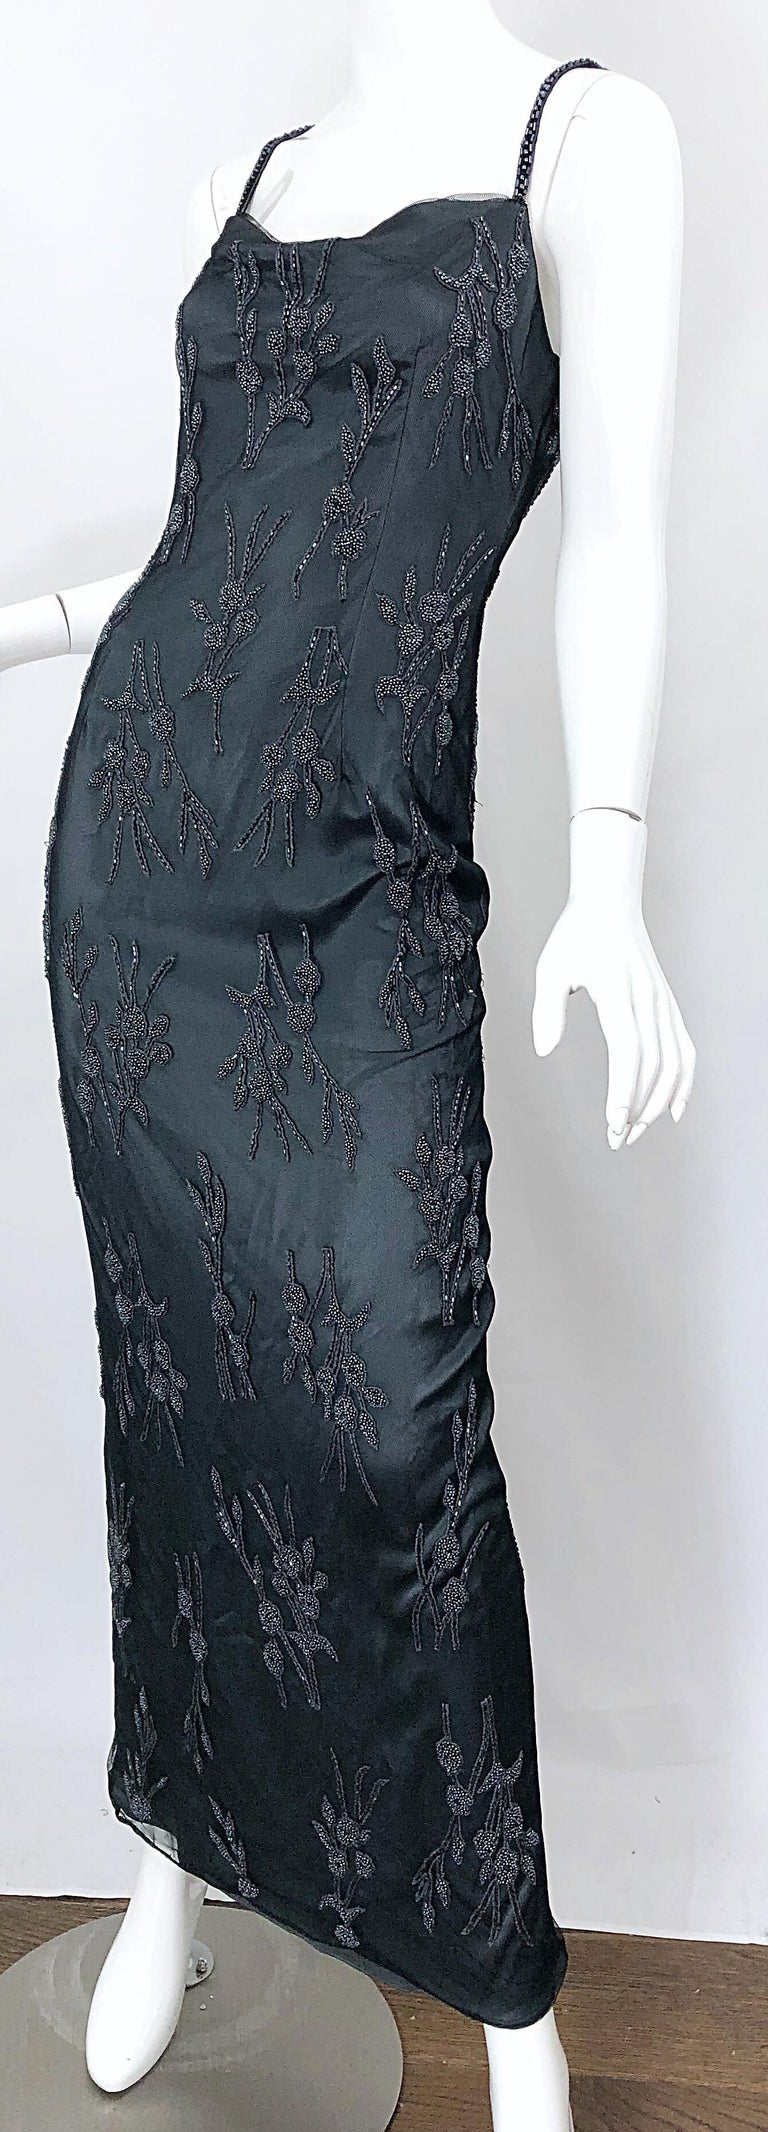 Vintage Bob Mackie Size 8 Grey Beaded 1990s Sequin Sleeveless 90s Evening Gown For Sale 4